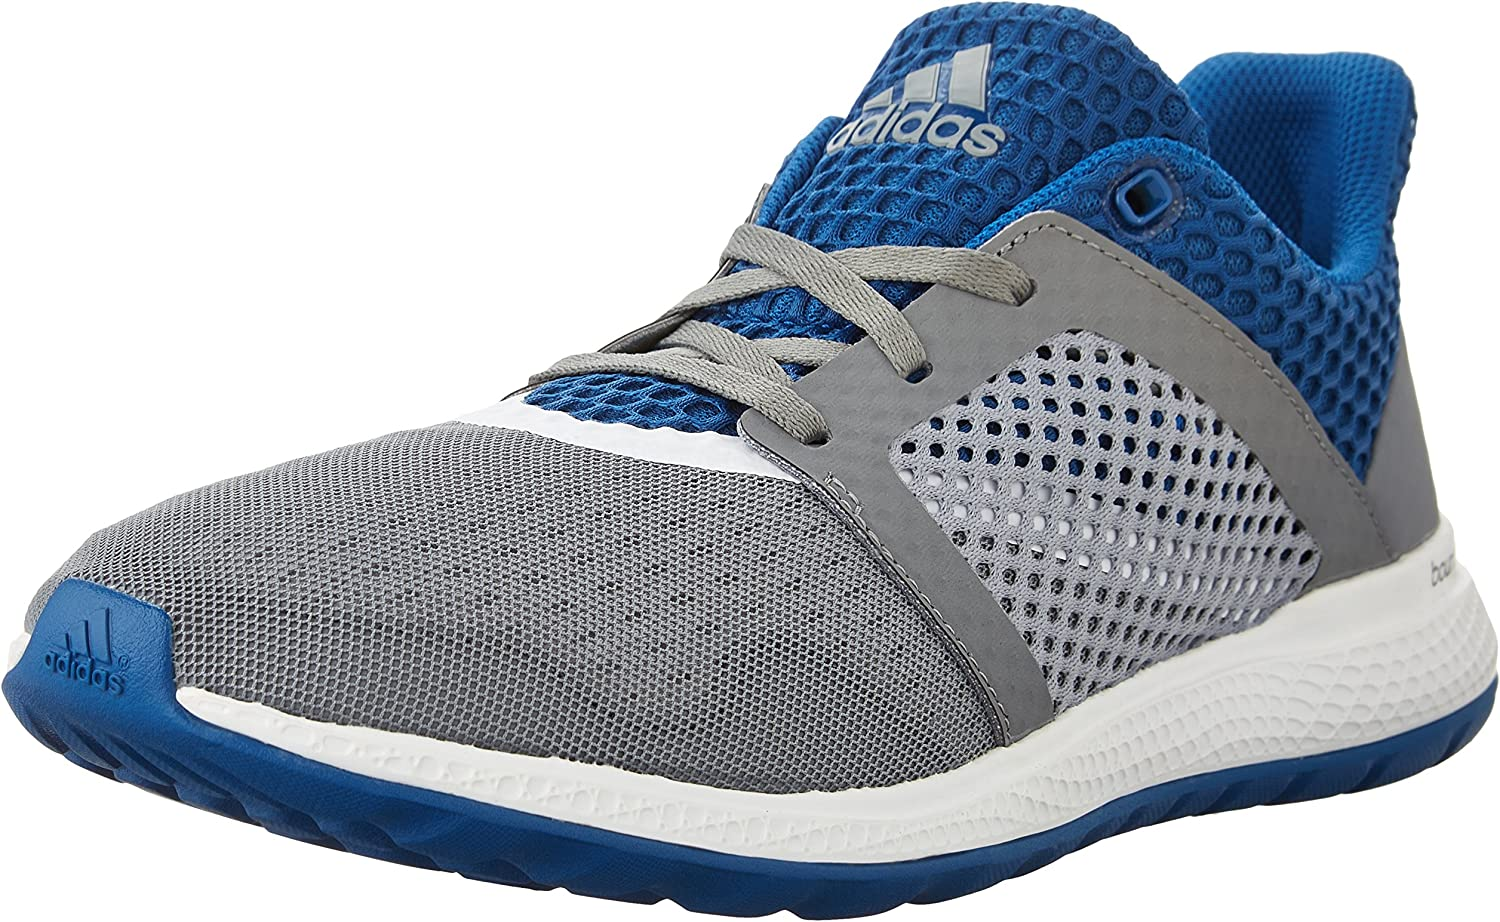 Adidas Men's Energy Bounce 2.0 Running shoes